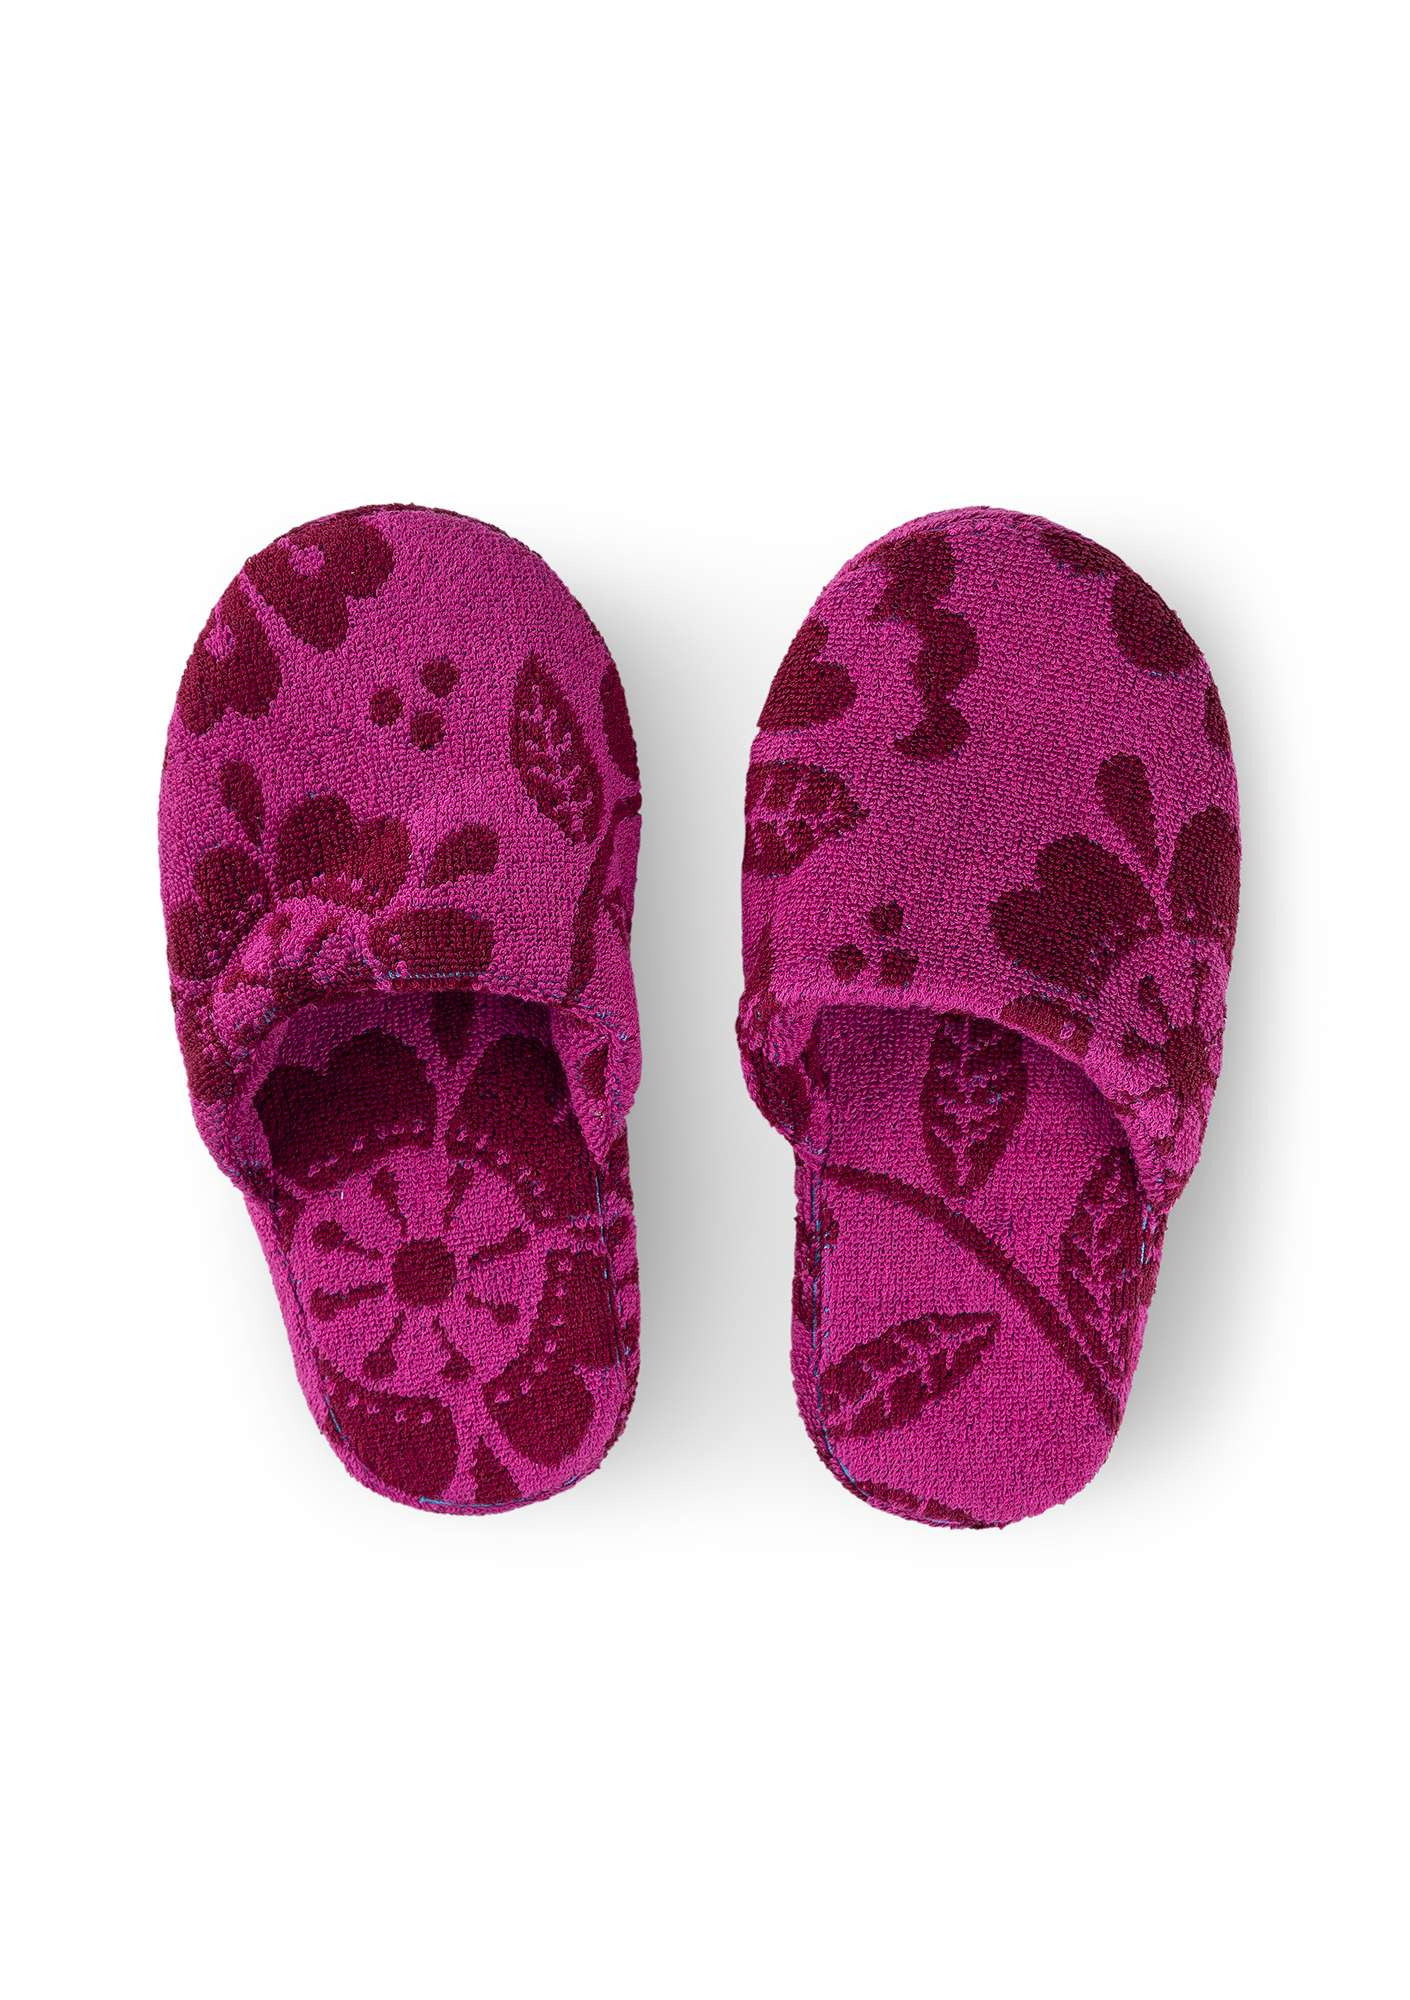 """Okinawa"" terry slippers in organic cotton pomegranate"